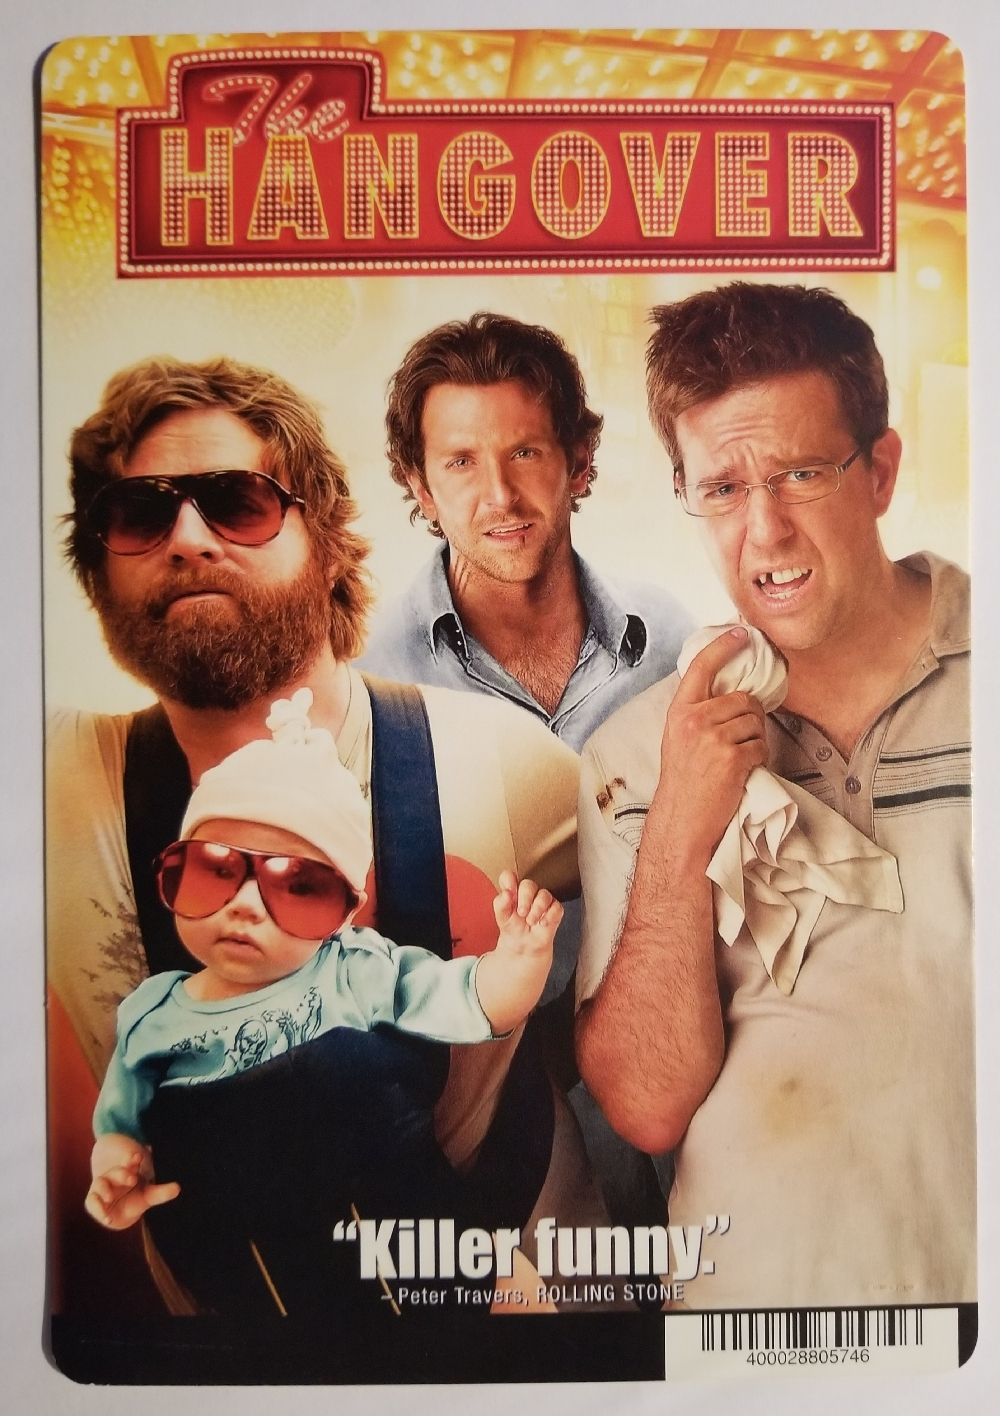 All Comedy Movies In 2009 pinthetreasuredgifts on bonanza movie backer cards